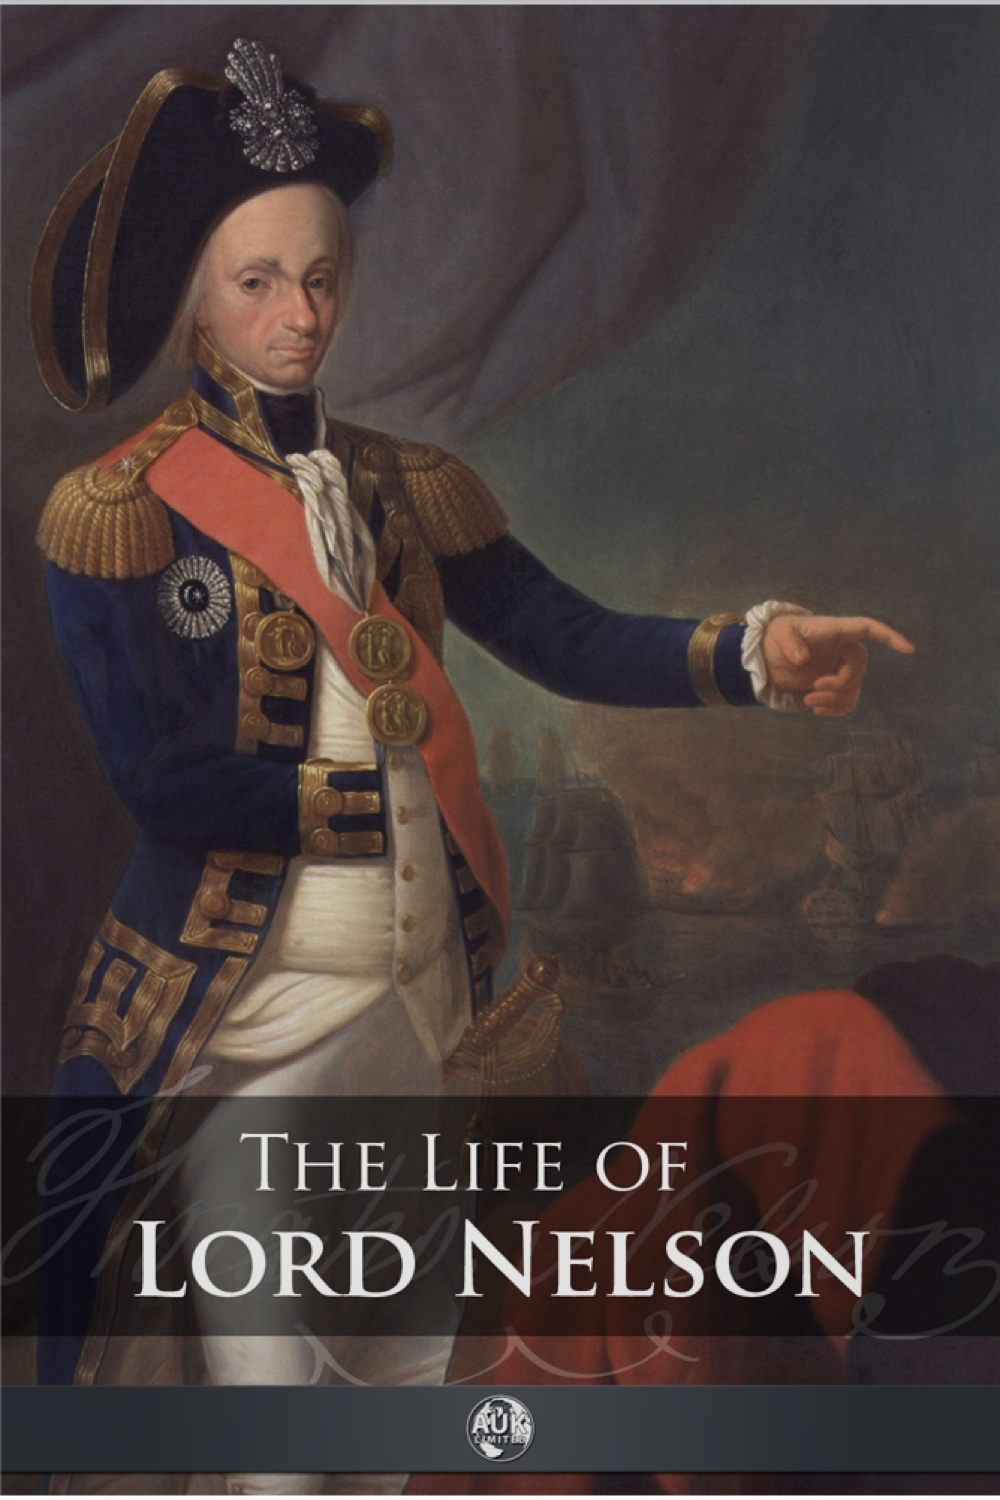 The Life of Lord Nelson By: Robert Southey